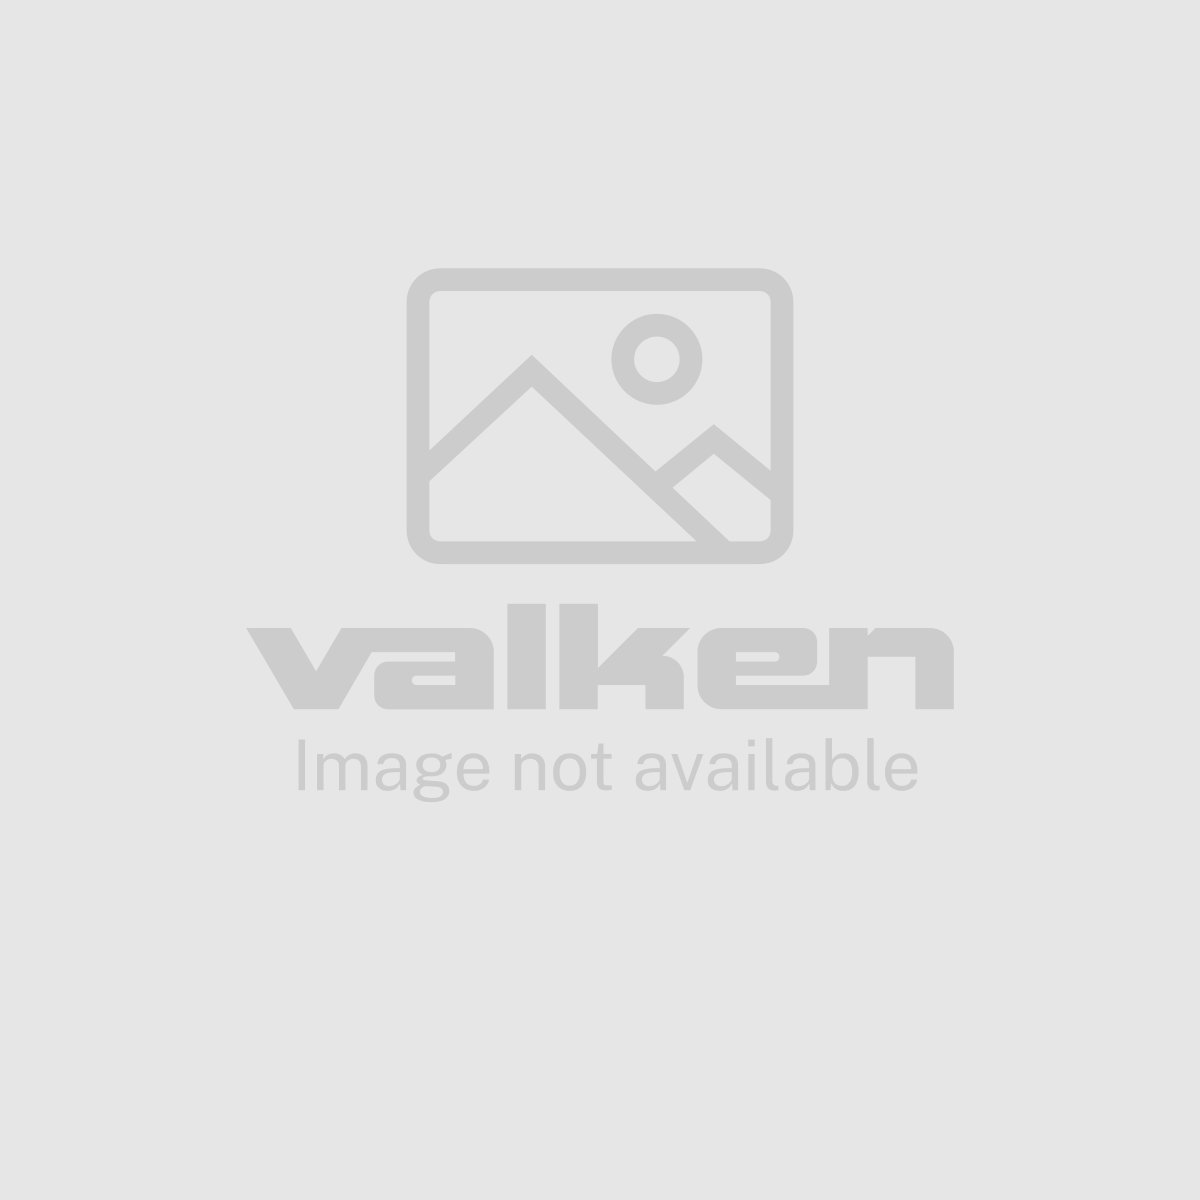 View larger image of Valken Fate GFX Tank Cover - Merica